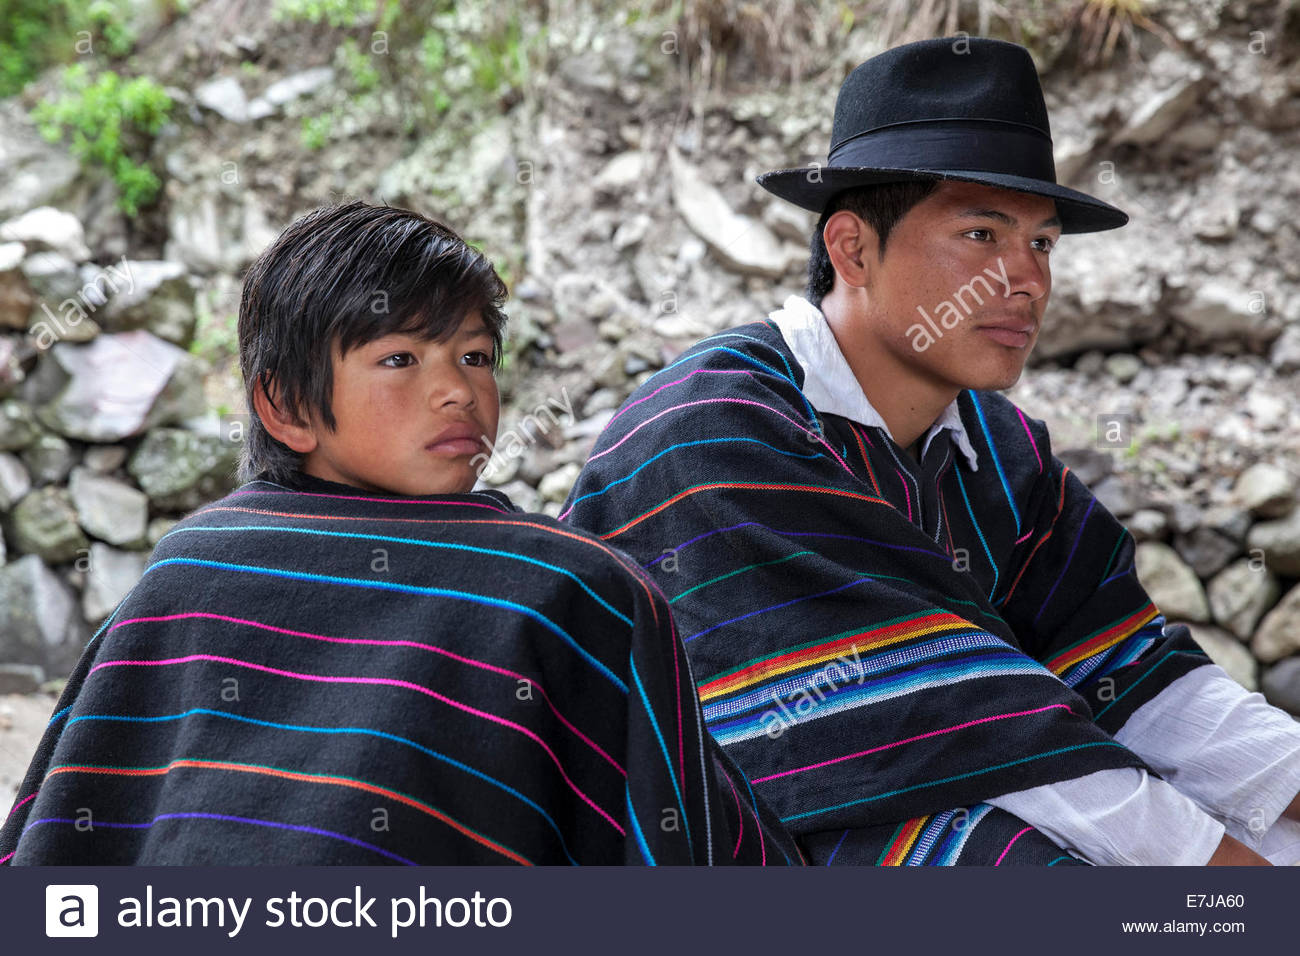 Boy and a man wearing ponchos, Ecuador Stock Photo